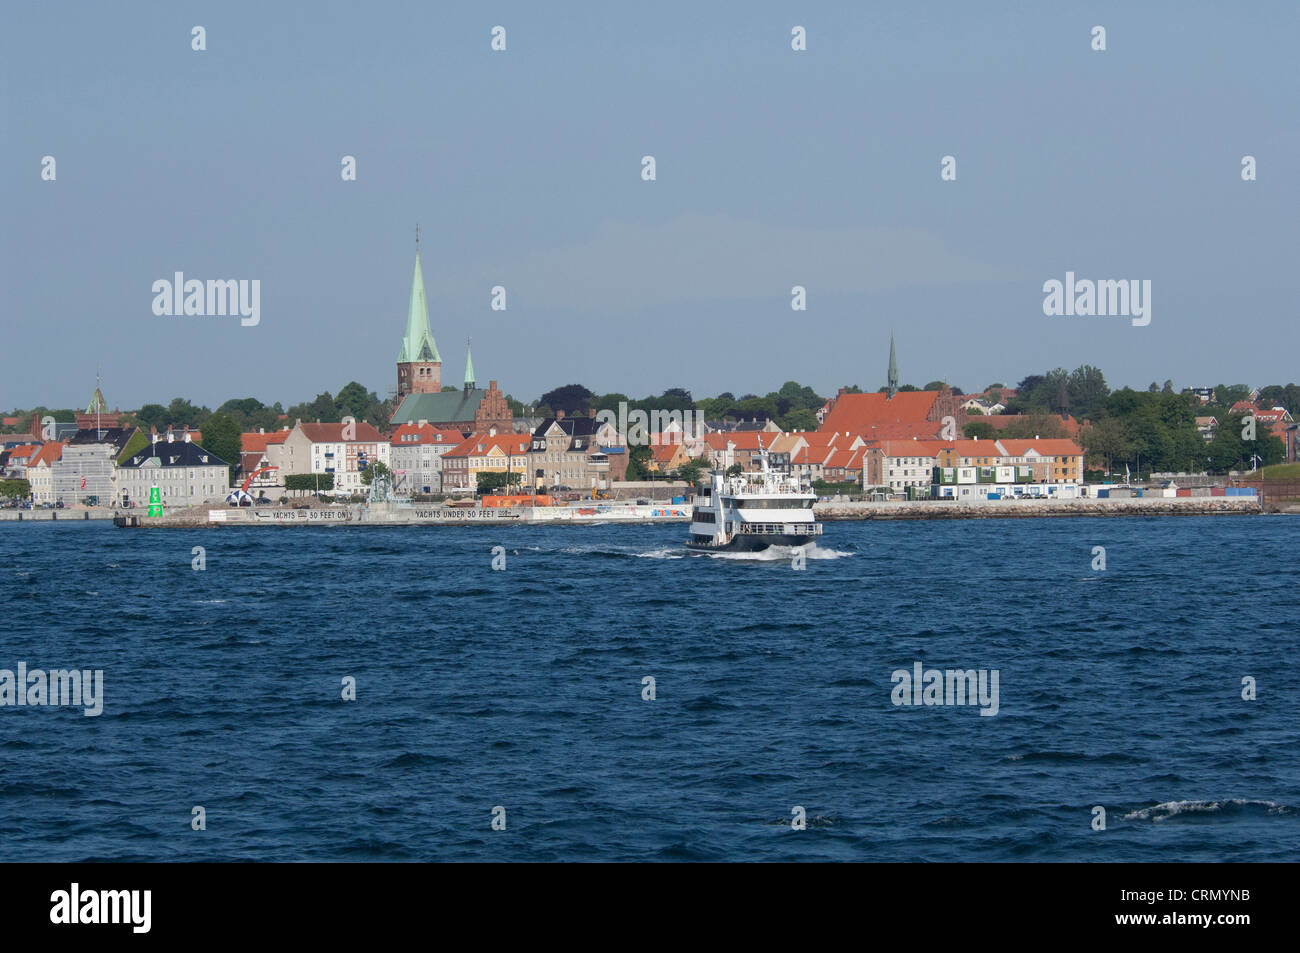 Denmark, Helsingoer. North Sea view of the port area of Helsingoer and historic city skyline with local ferry. - Stock Image